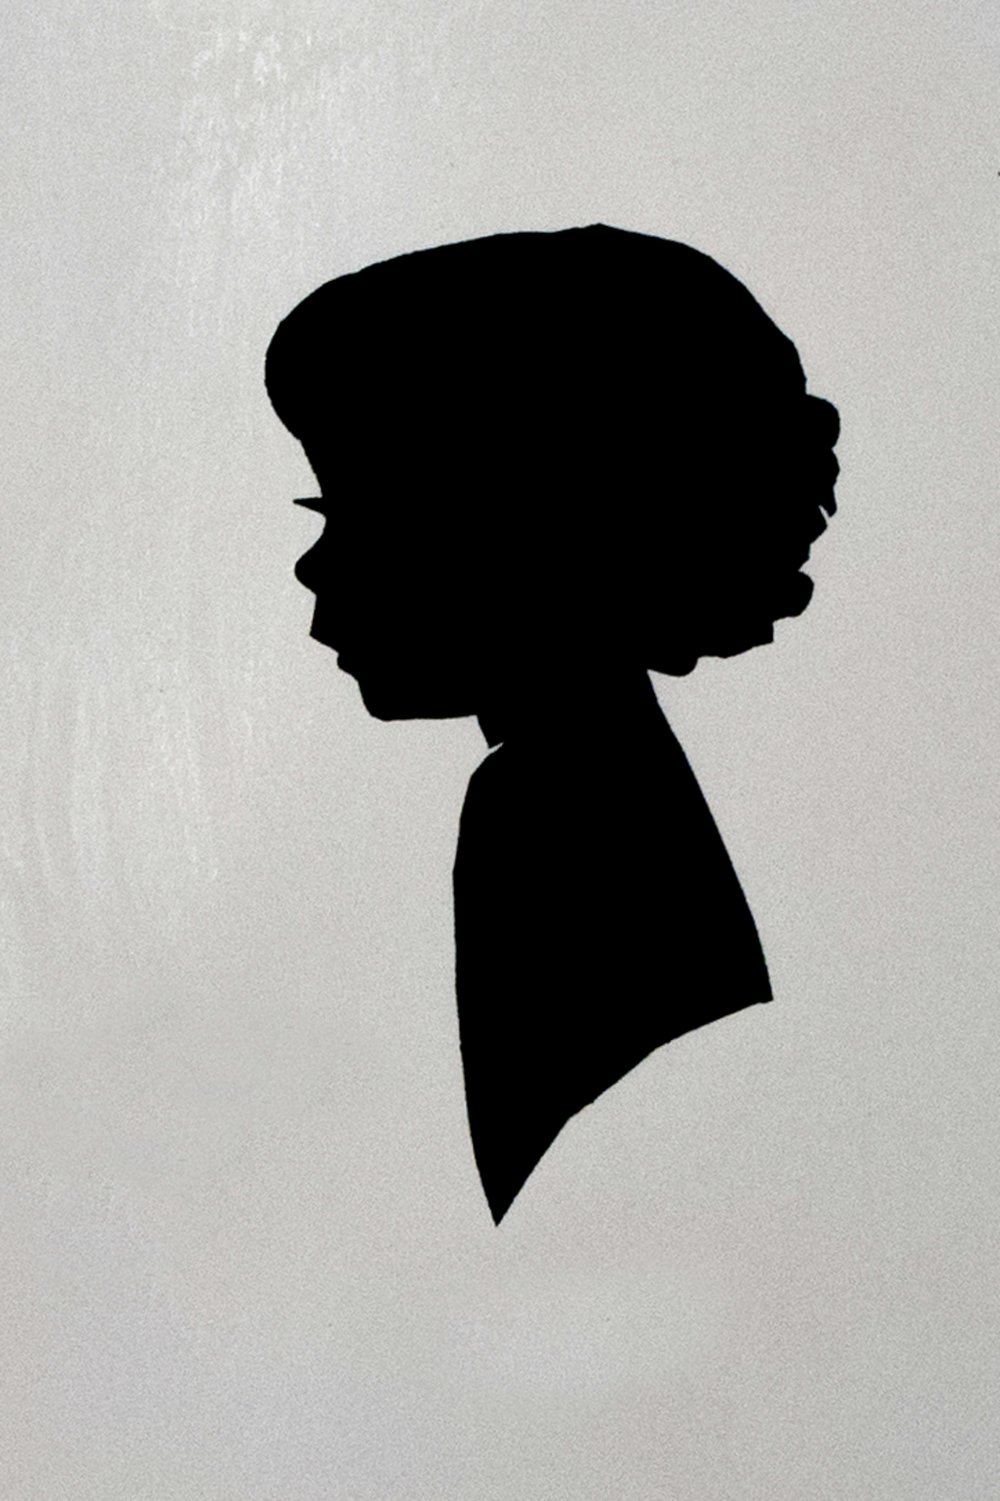 My daughter's silhouette from around seven years ago